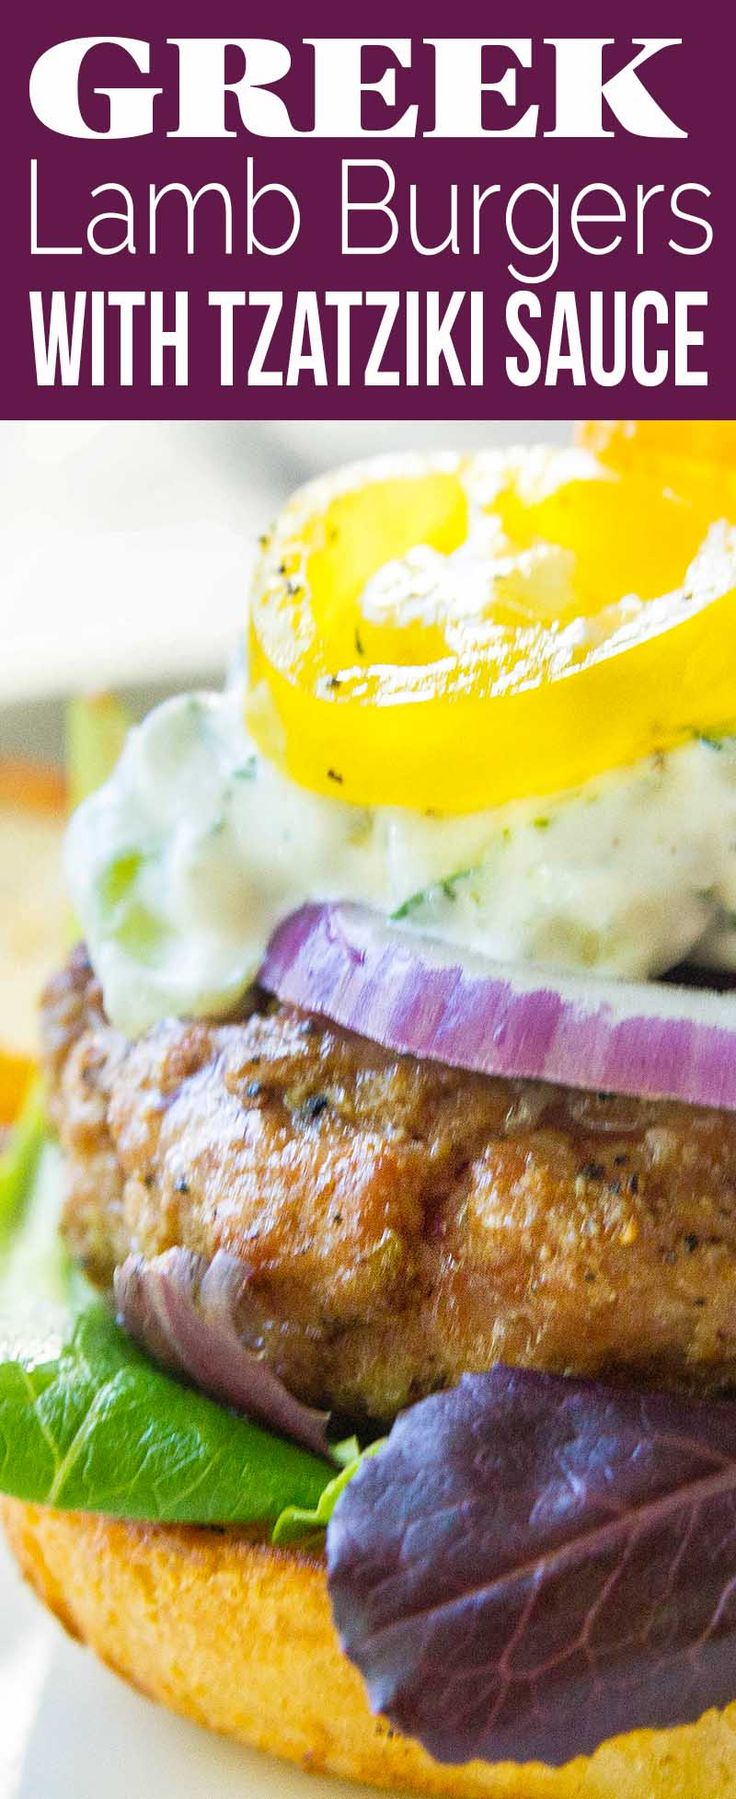 Grilled lamb burgers with homemade tzatziki cucumber sauce! Top with feta, sliced tomato, lettuce, and red onion. Easy summer cook-out recipe.